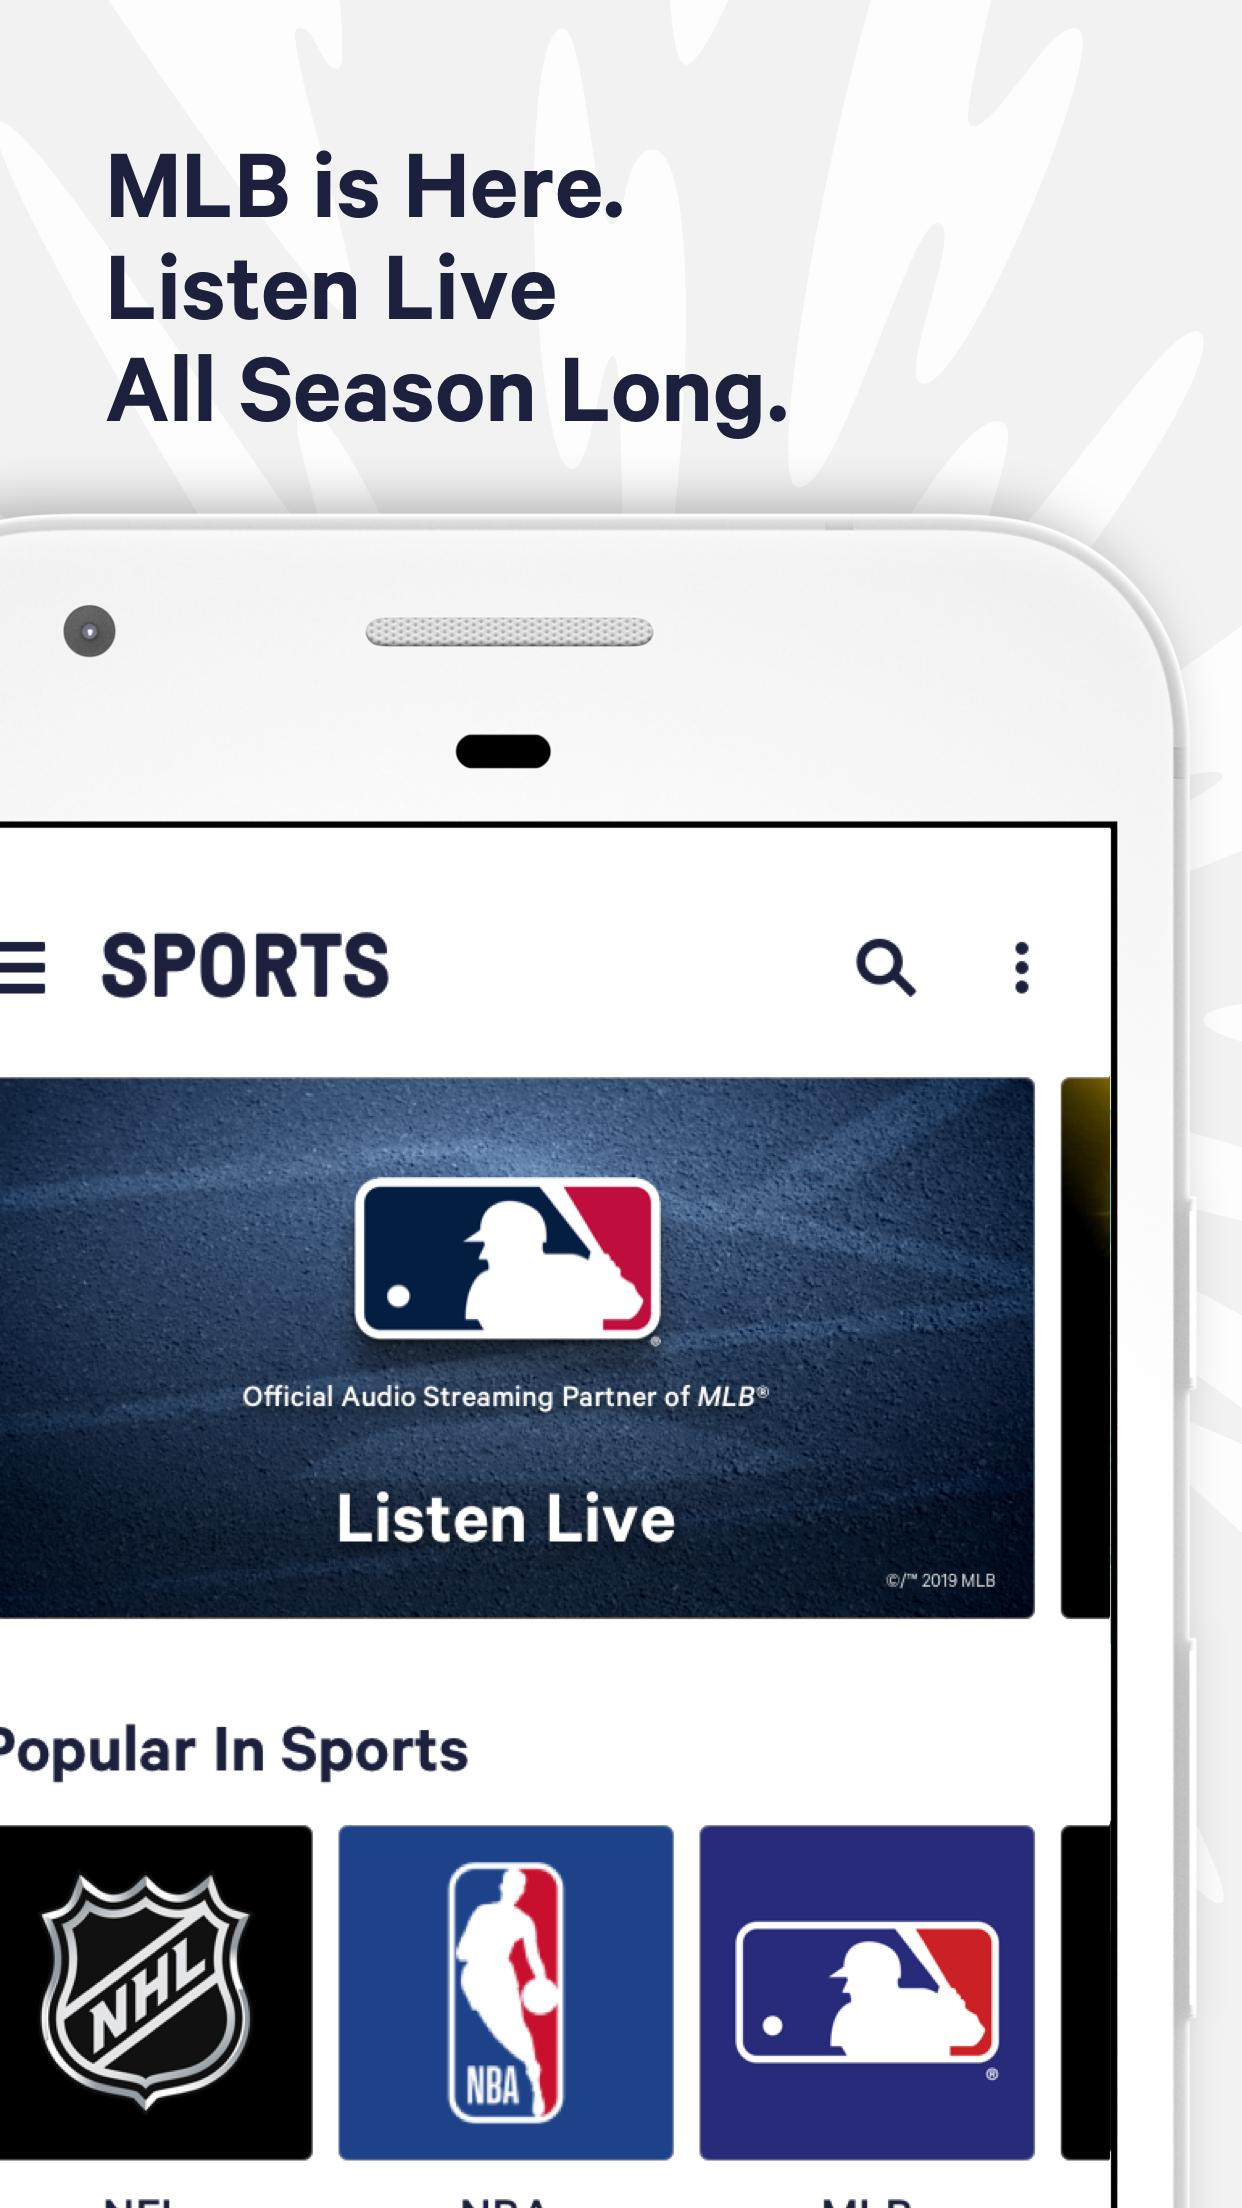 TuneIn - NFL Radio, Free Music, Sports & Podcasts for